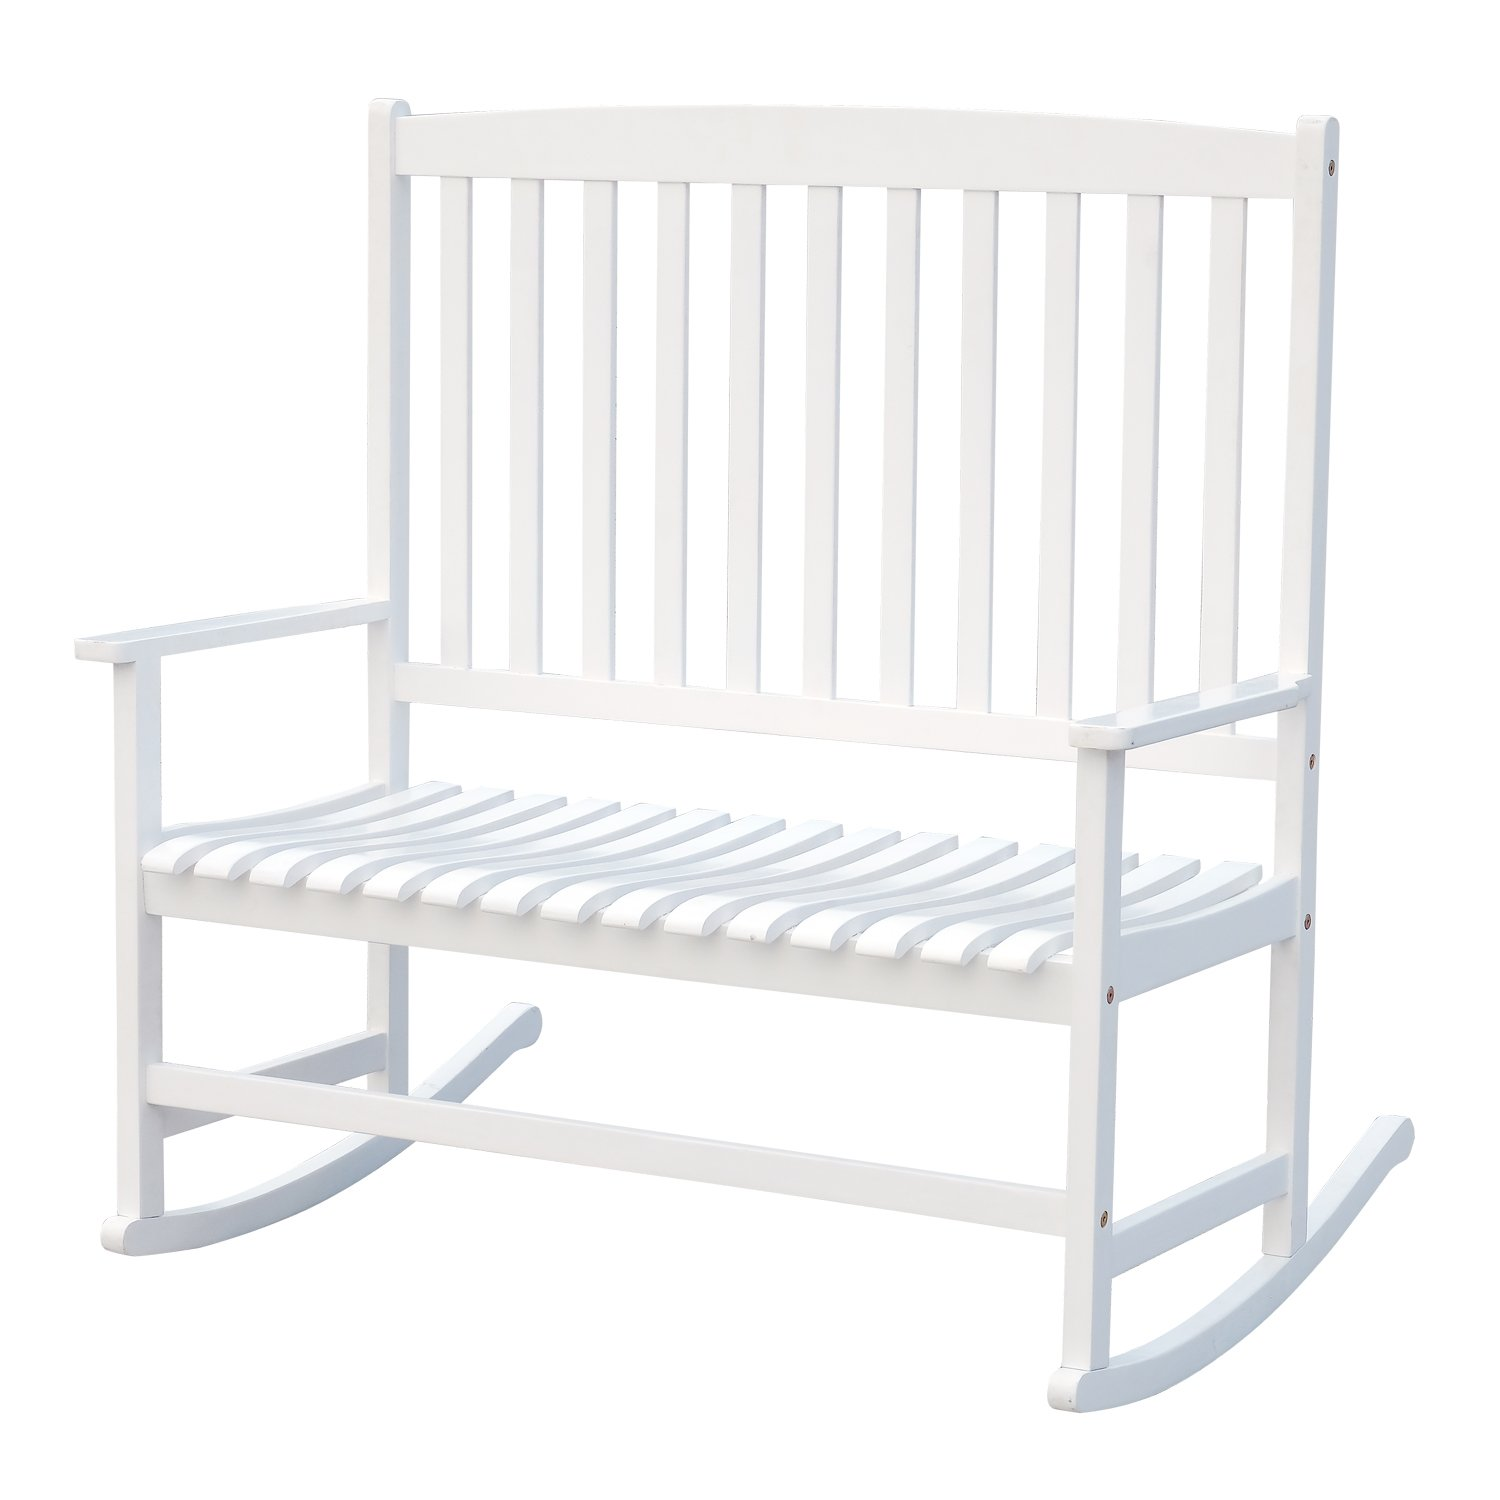 Outsunny 46'' 2-Person Acacia Wood Outdoor Porch Rocking Chair with Armrest - White